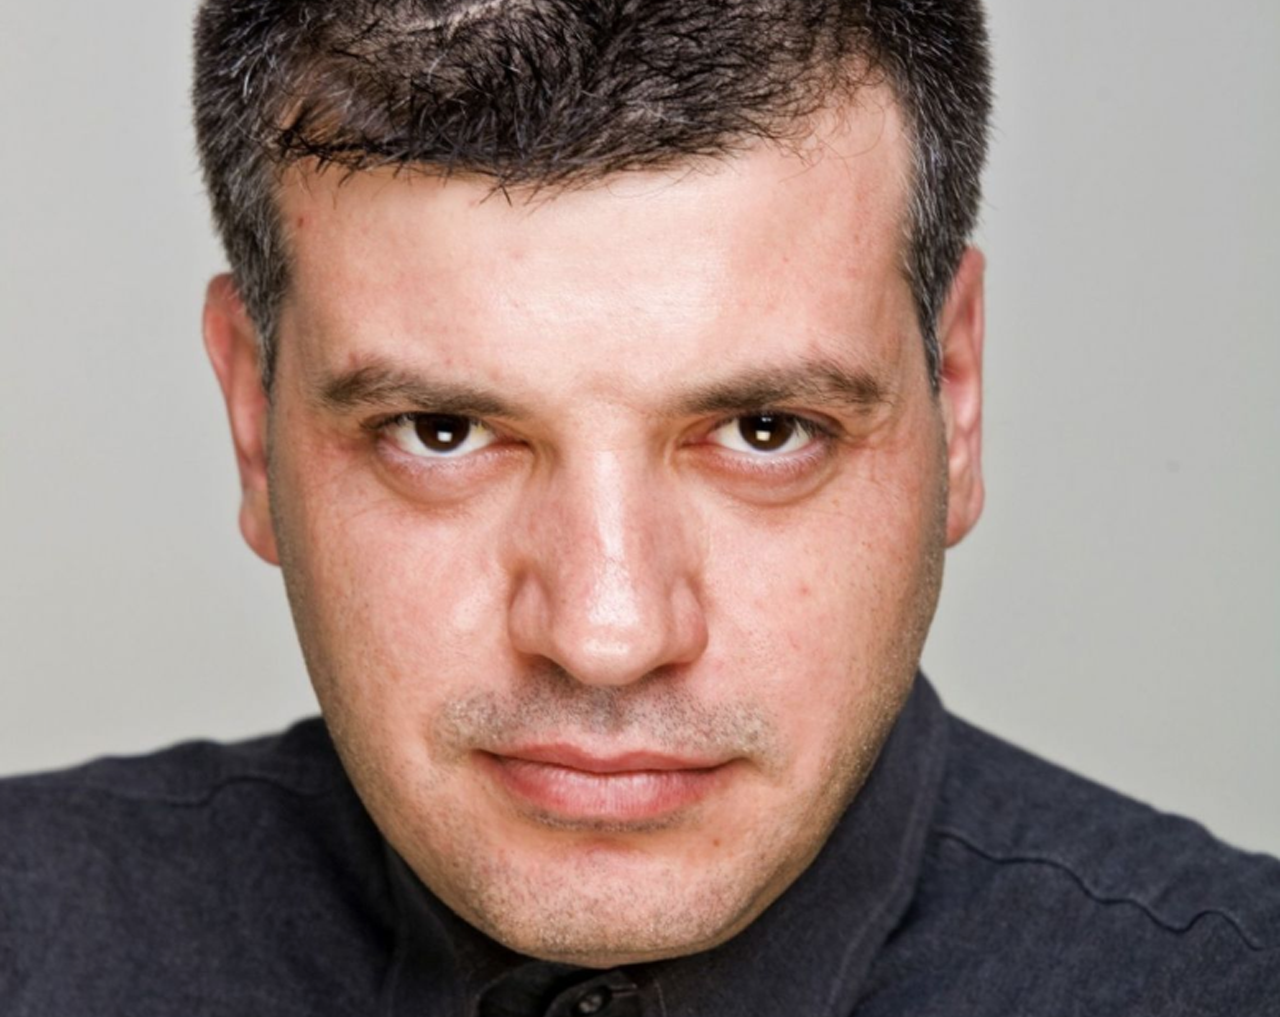 headshot of sayed kashua